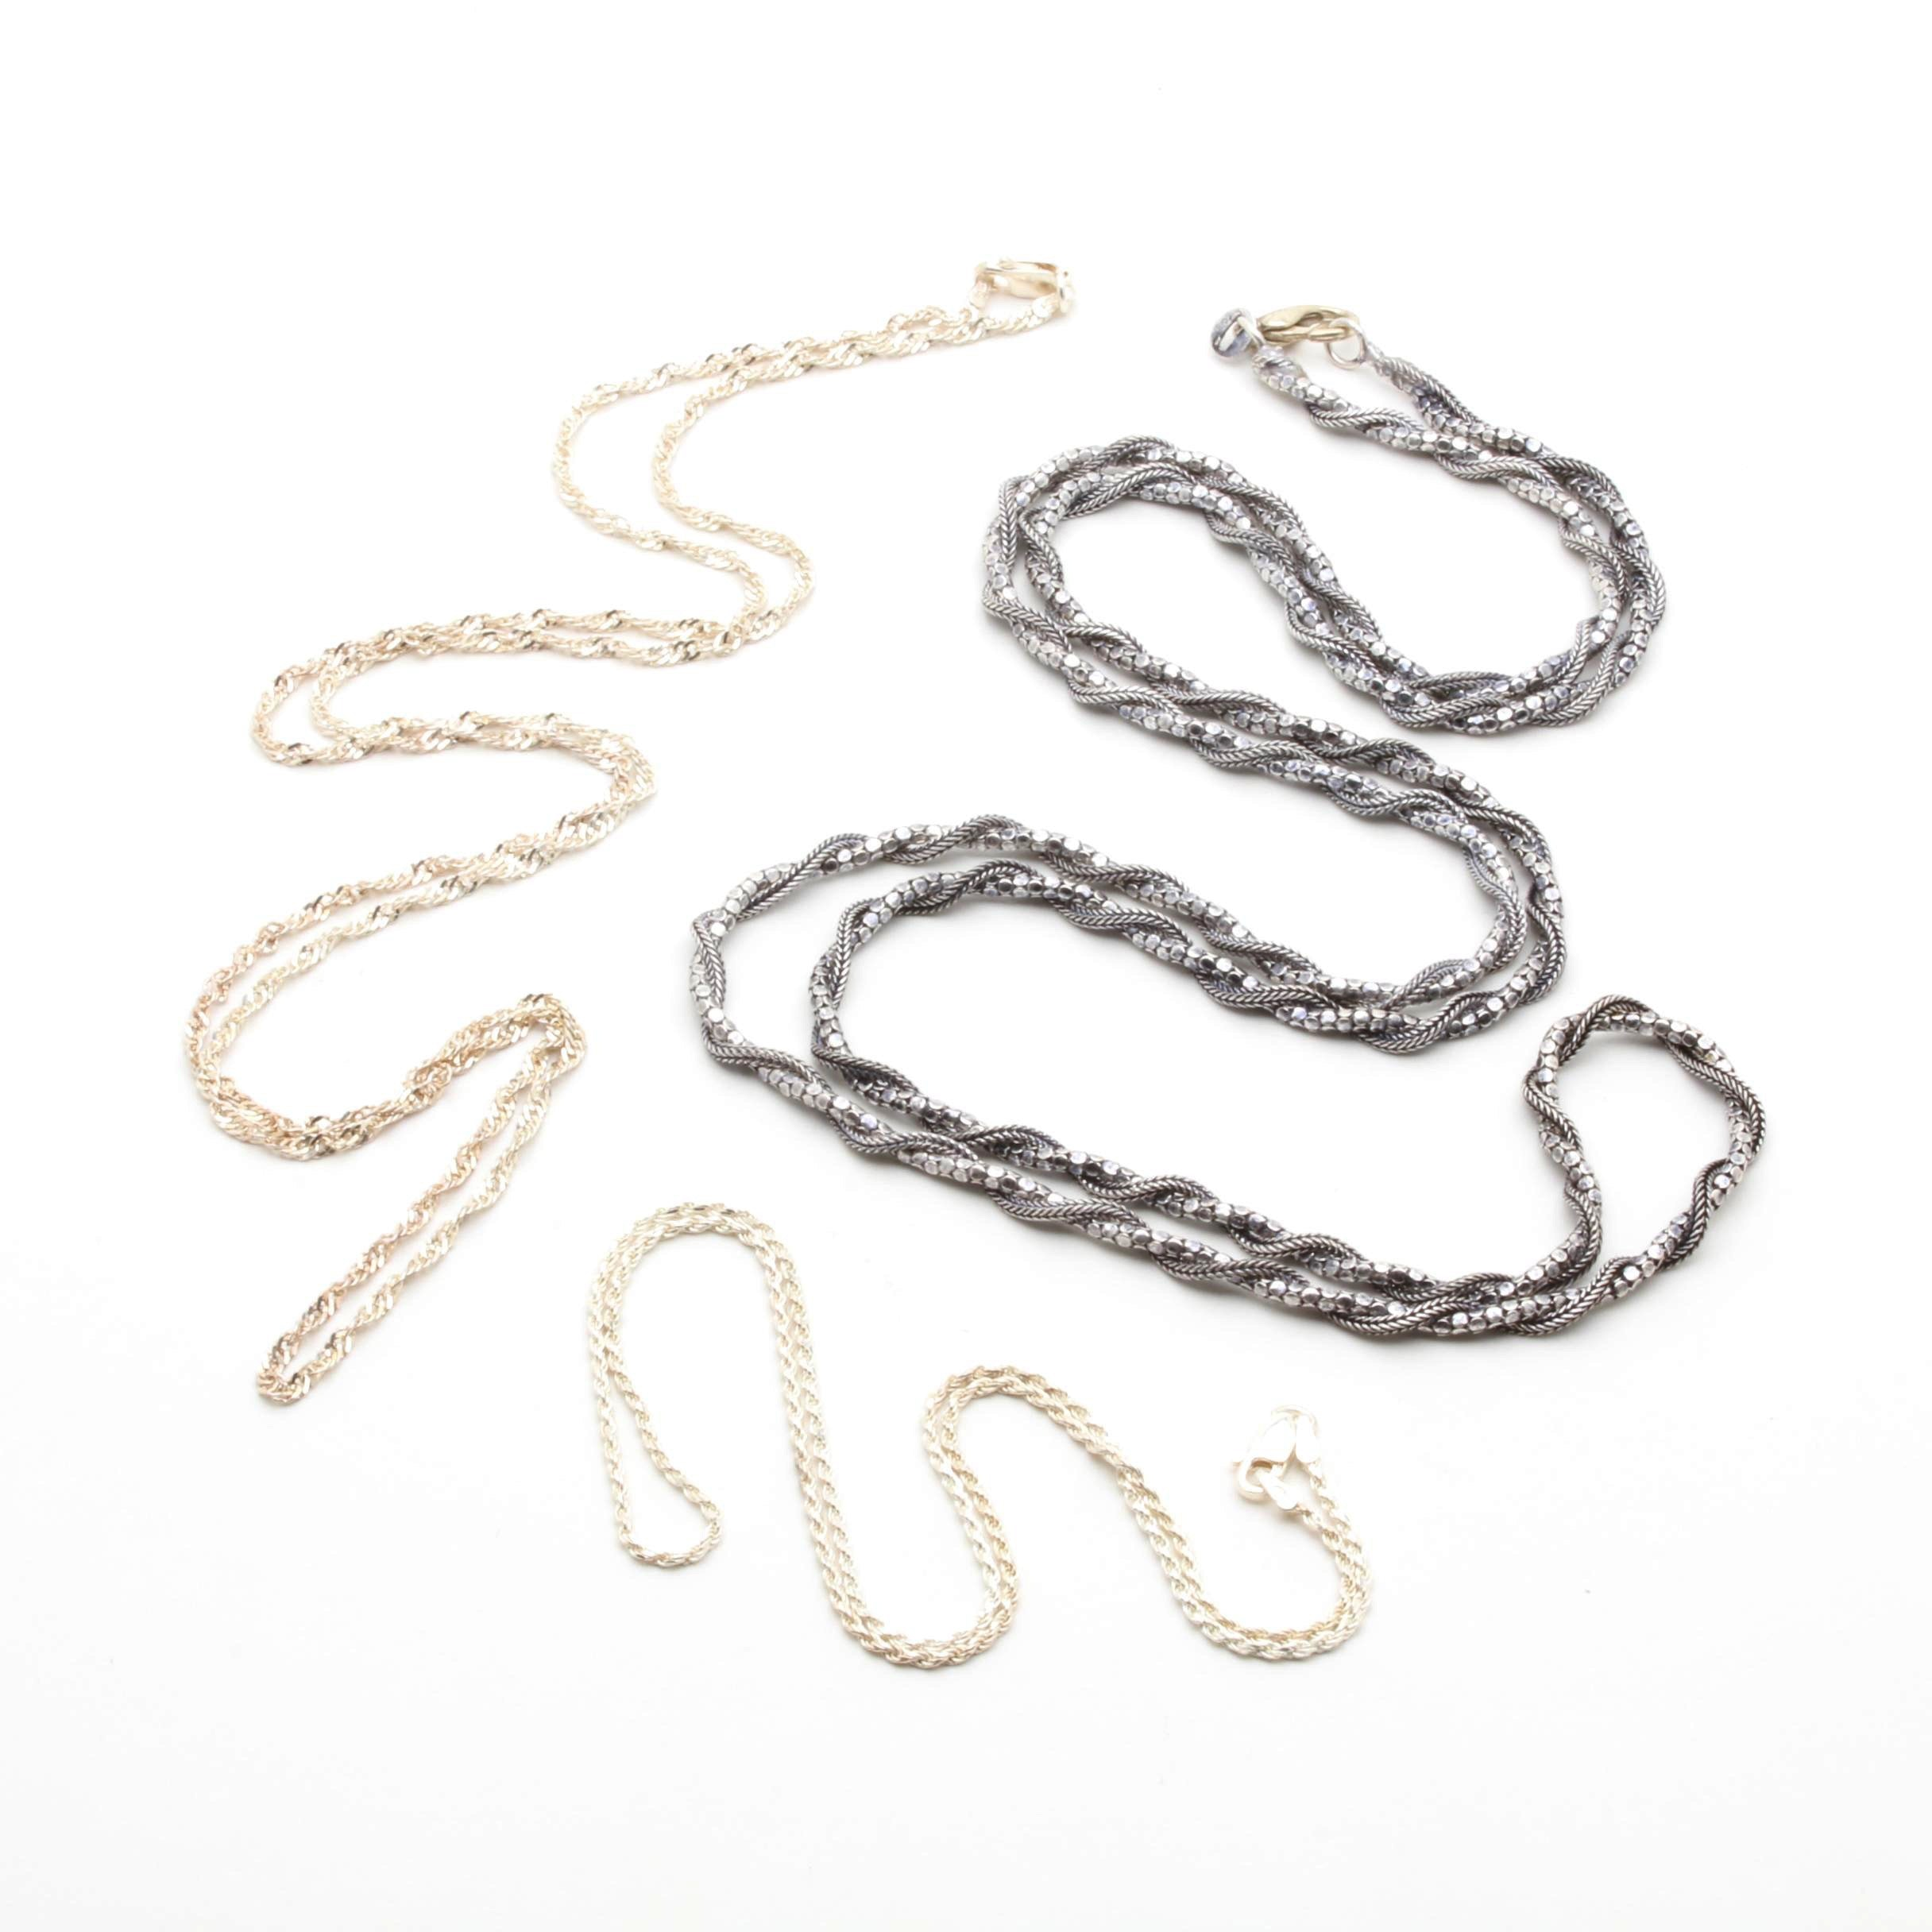 Sterling Silver Chain Necklace Assortment